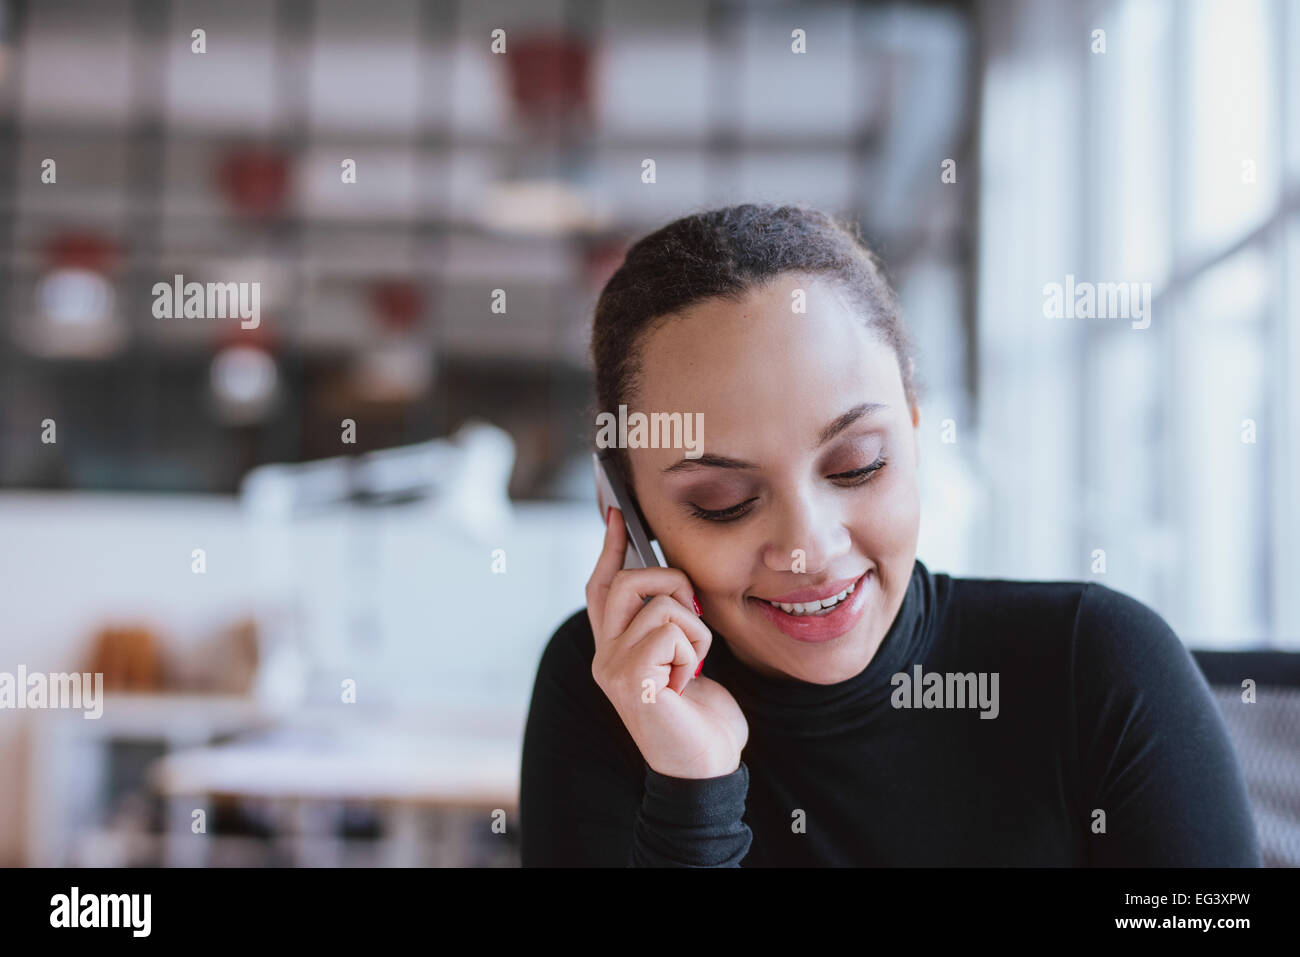 Closeup image of young woman talking on mobile phone. African american female model using cell phone at work. - Stock Image